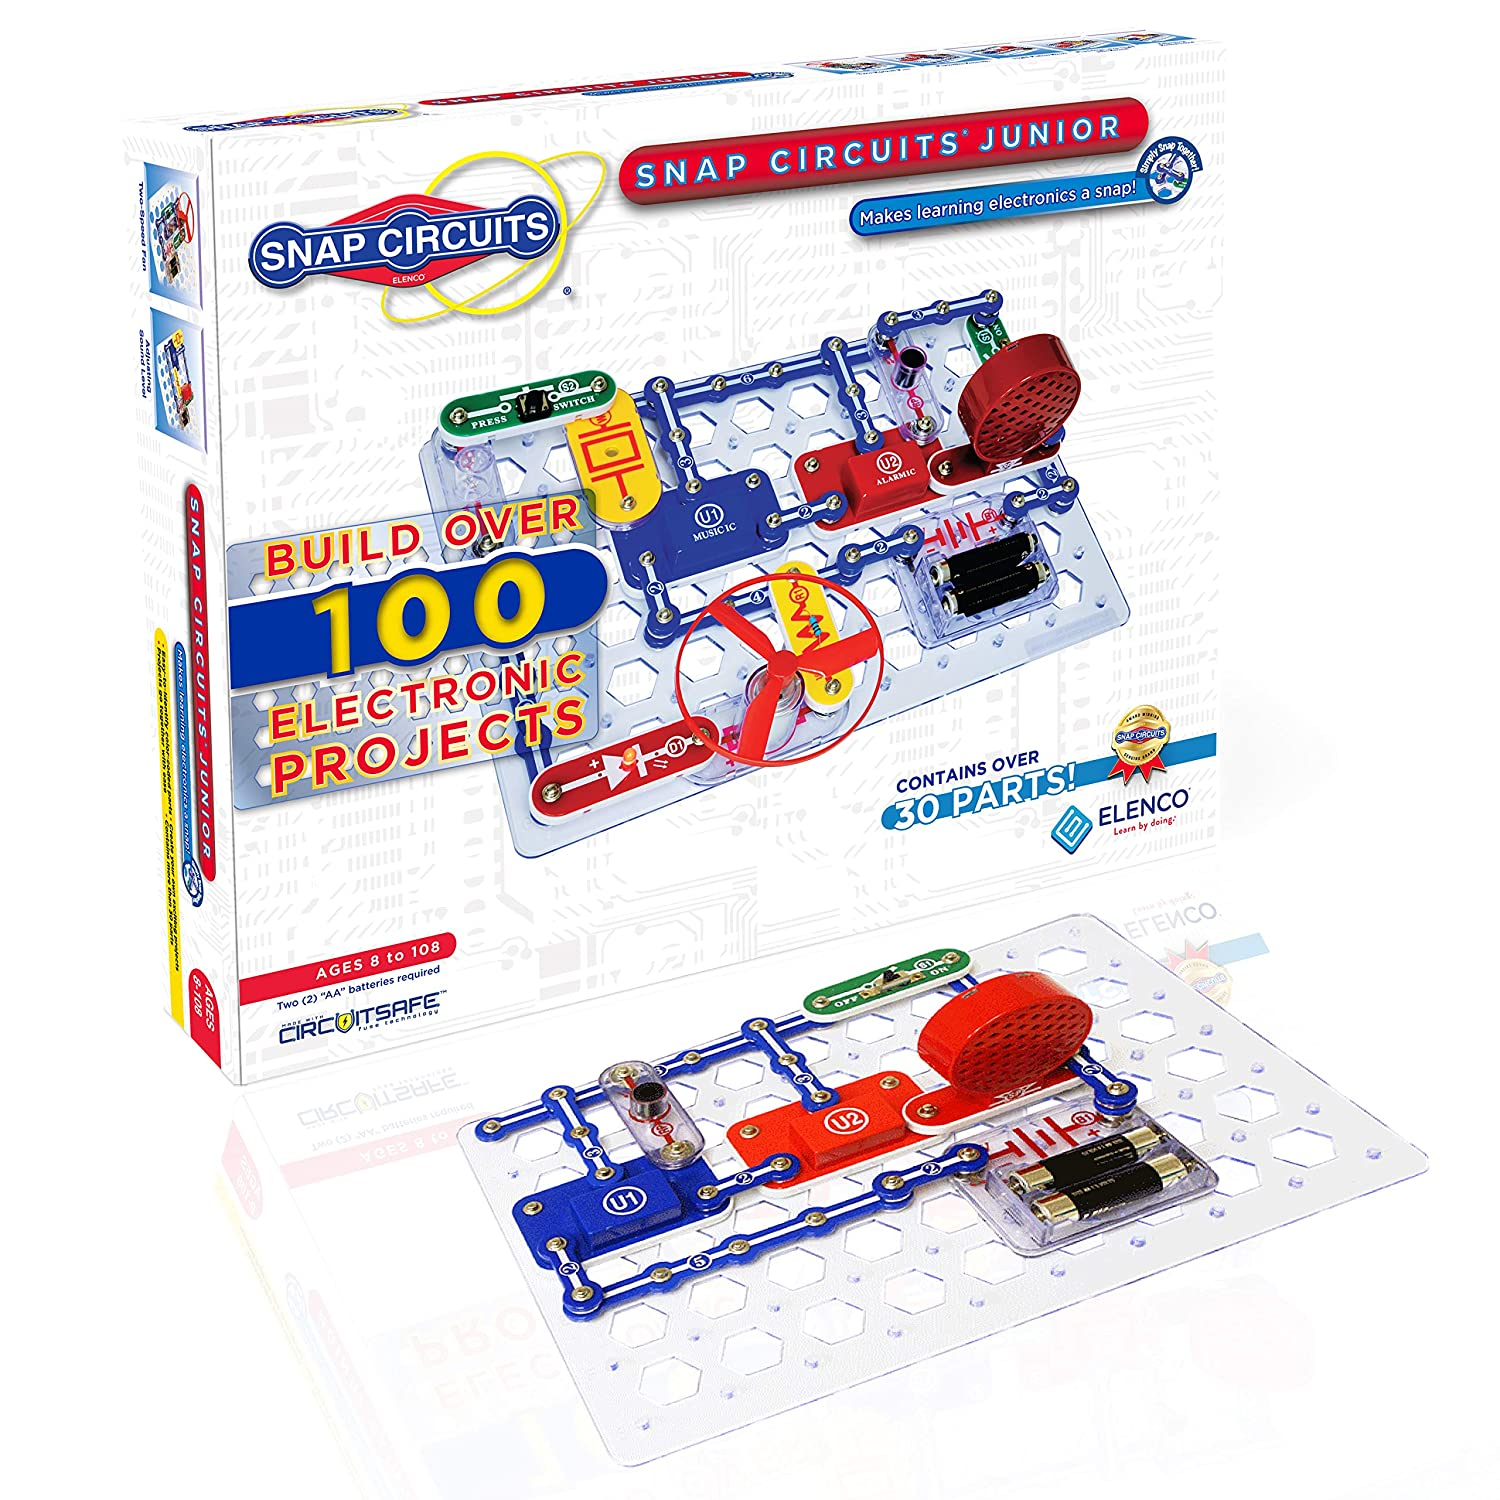 c0bd1b0a181 Buy Snap Circuits Jr. SC-100 Online at Low Prices in India - Amazon.in